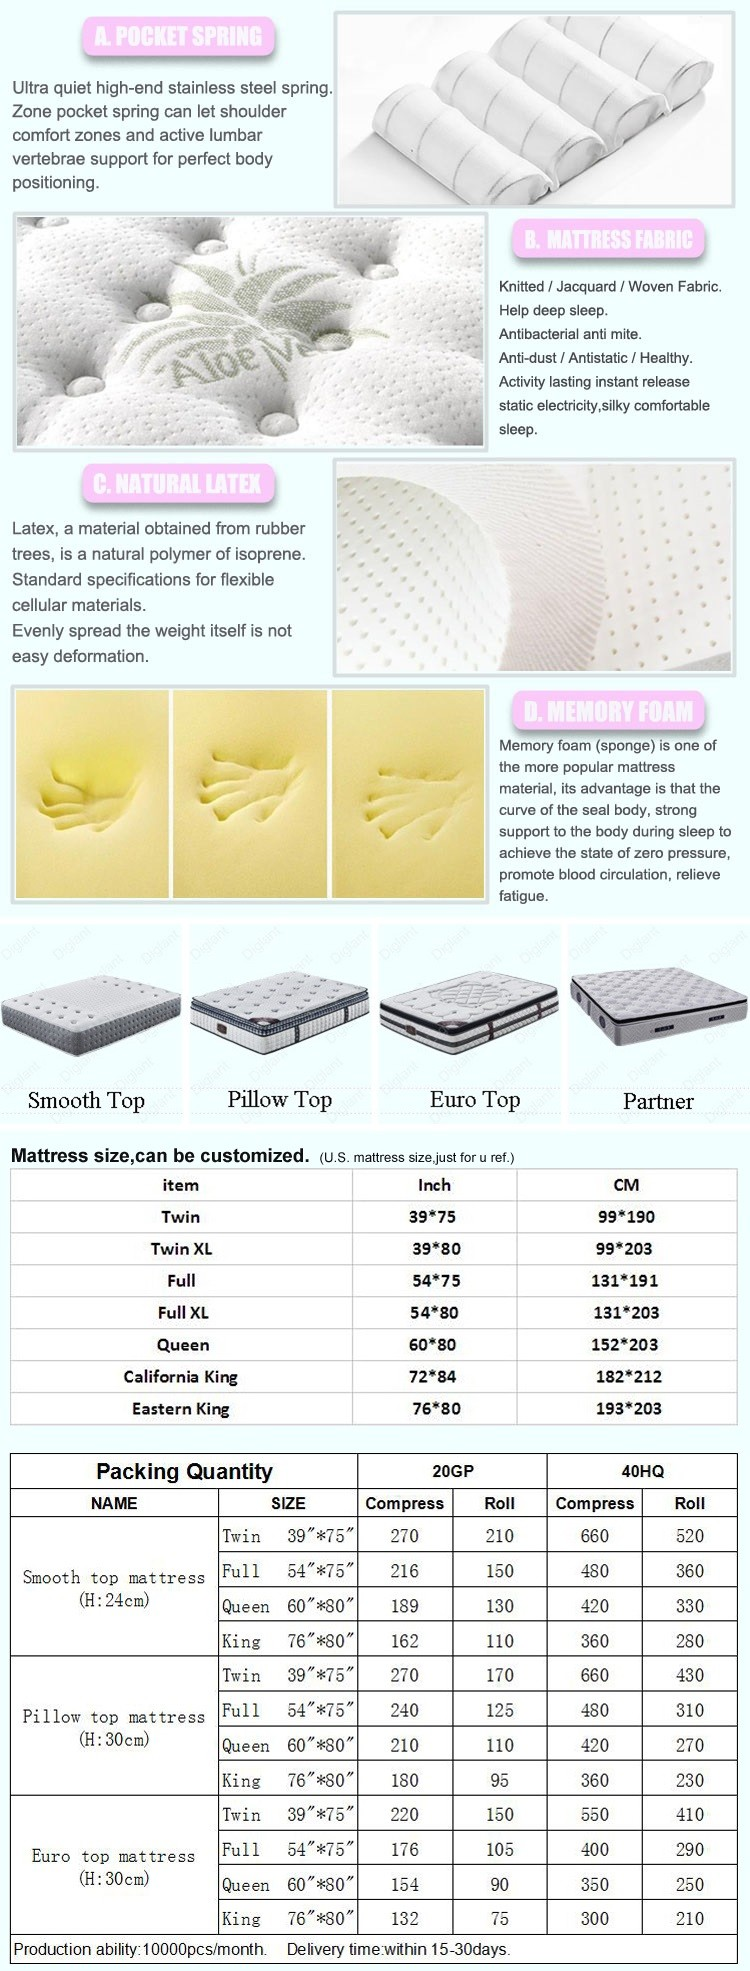 Natural latex rolling mattress (R6-PL29)